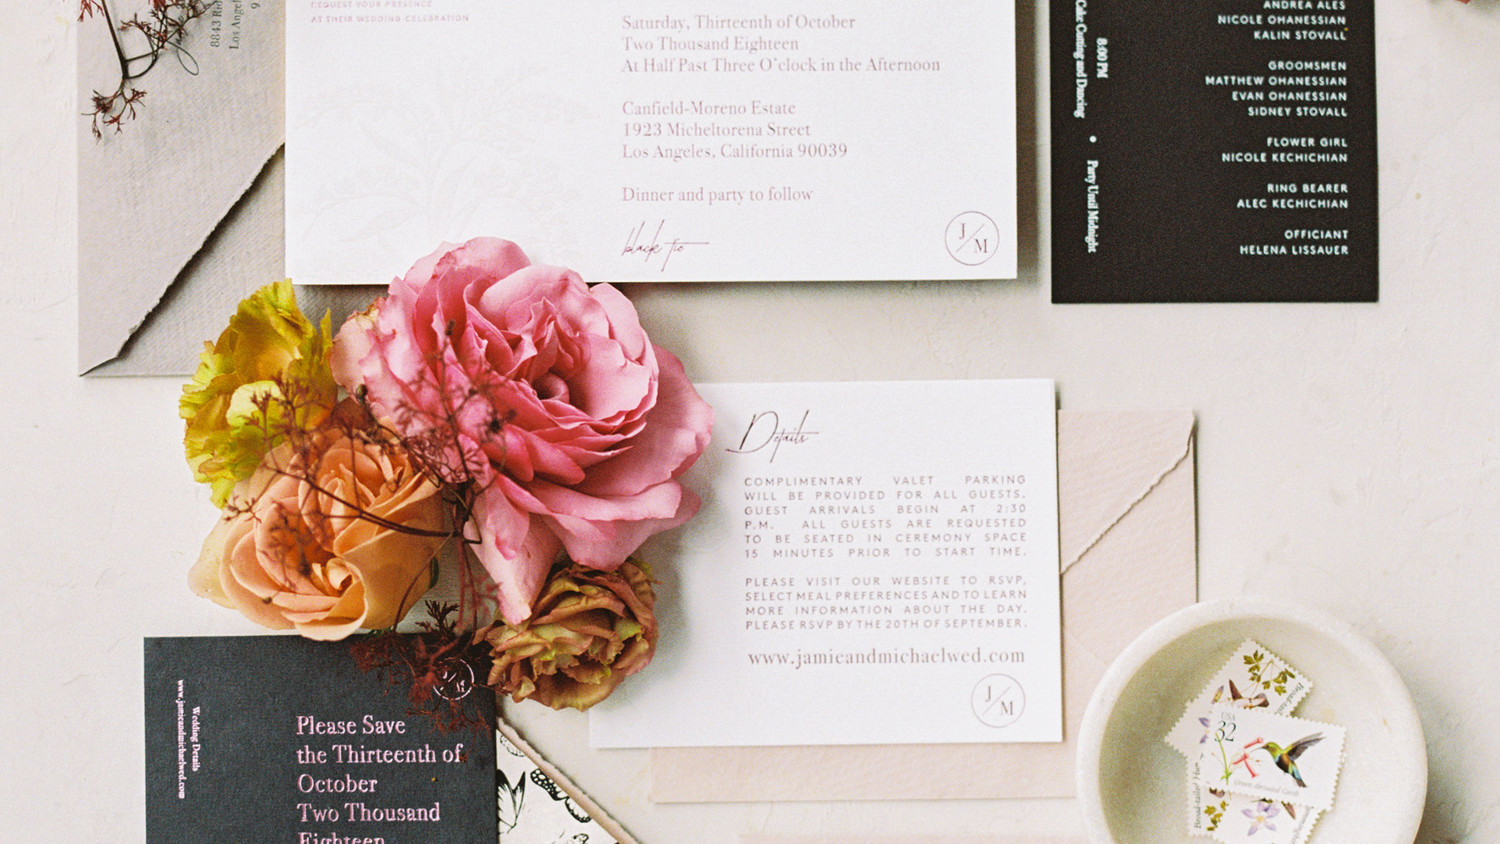 Martha Stewart Wedding Invitation: How To Choose The Right Font For Your Wedding Invitations